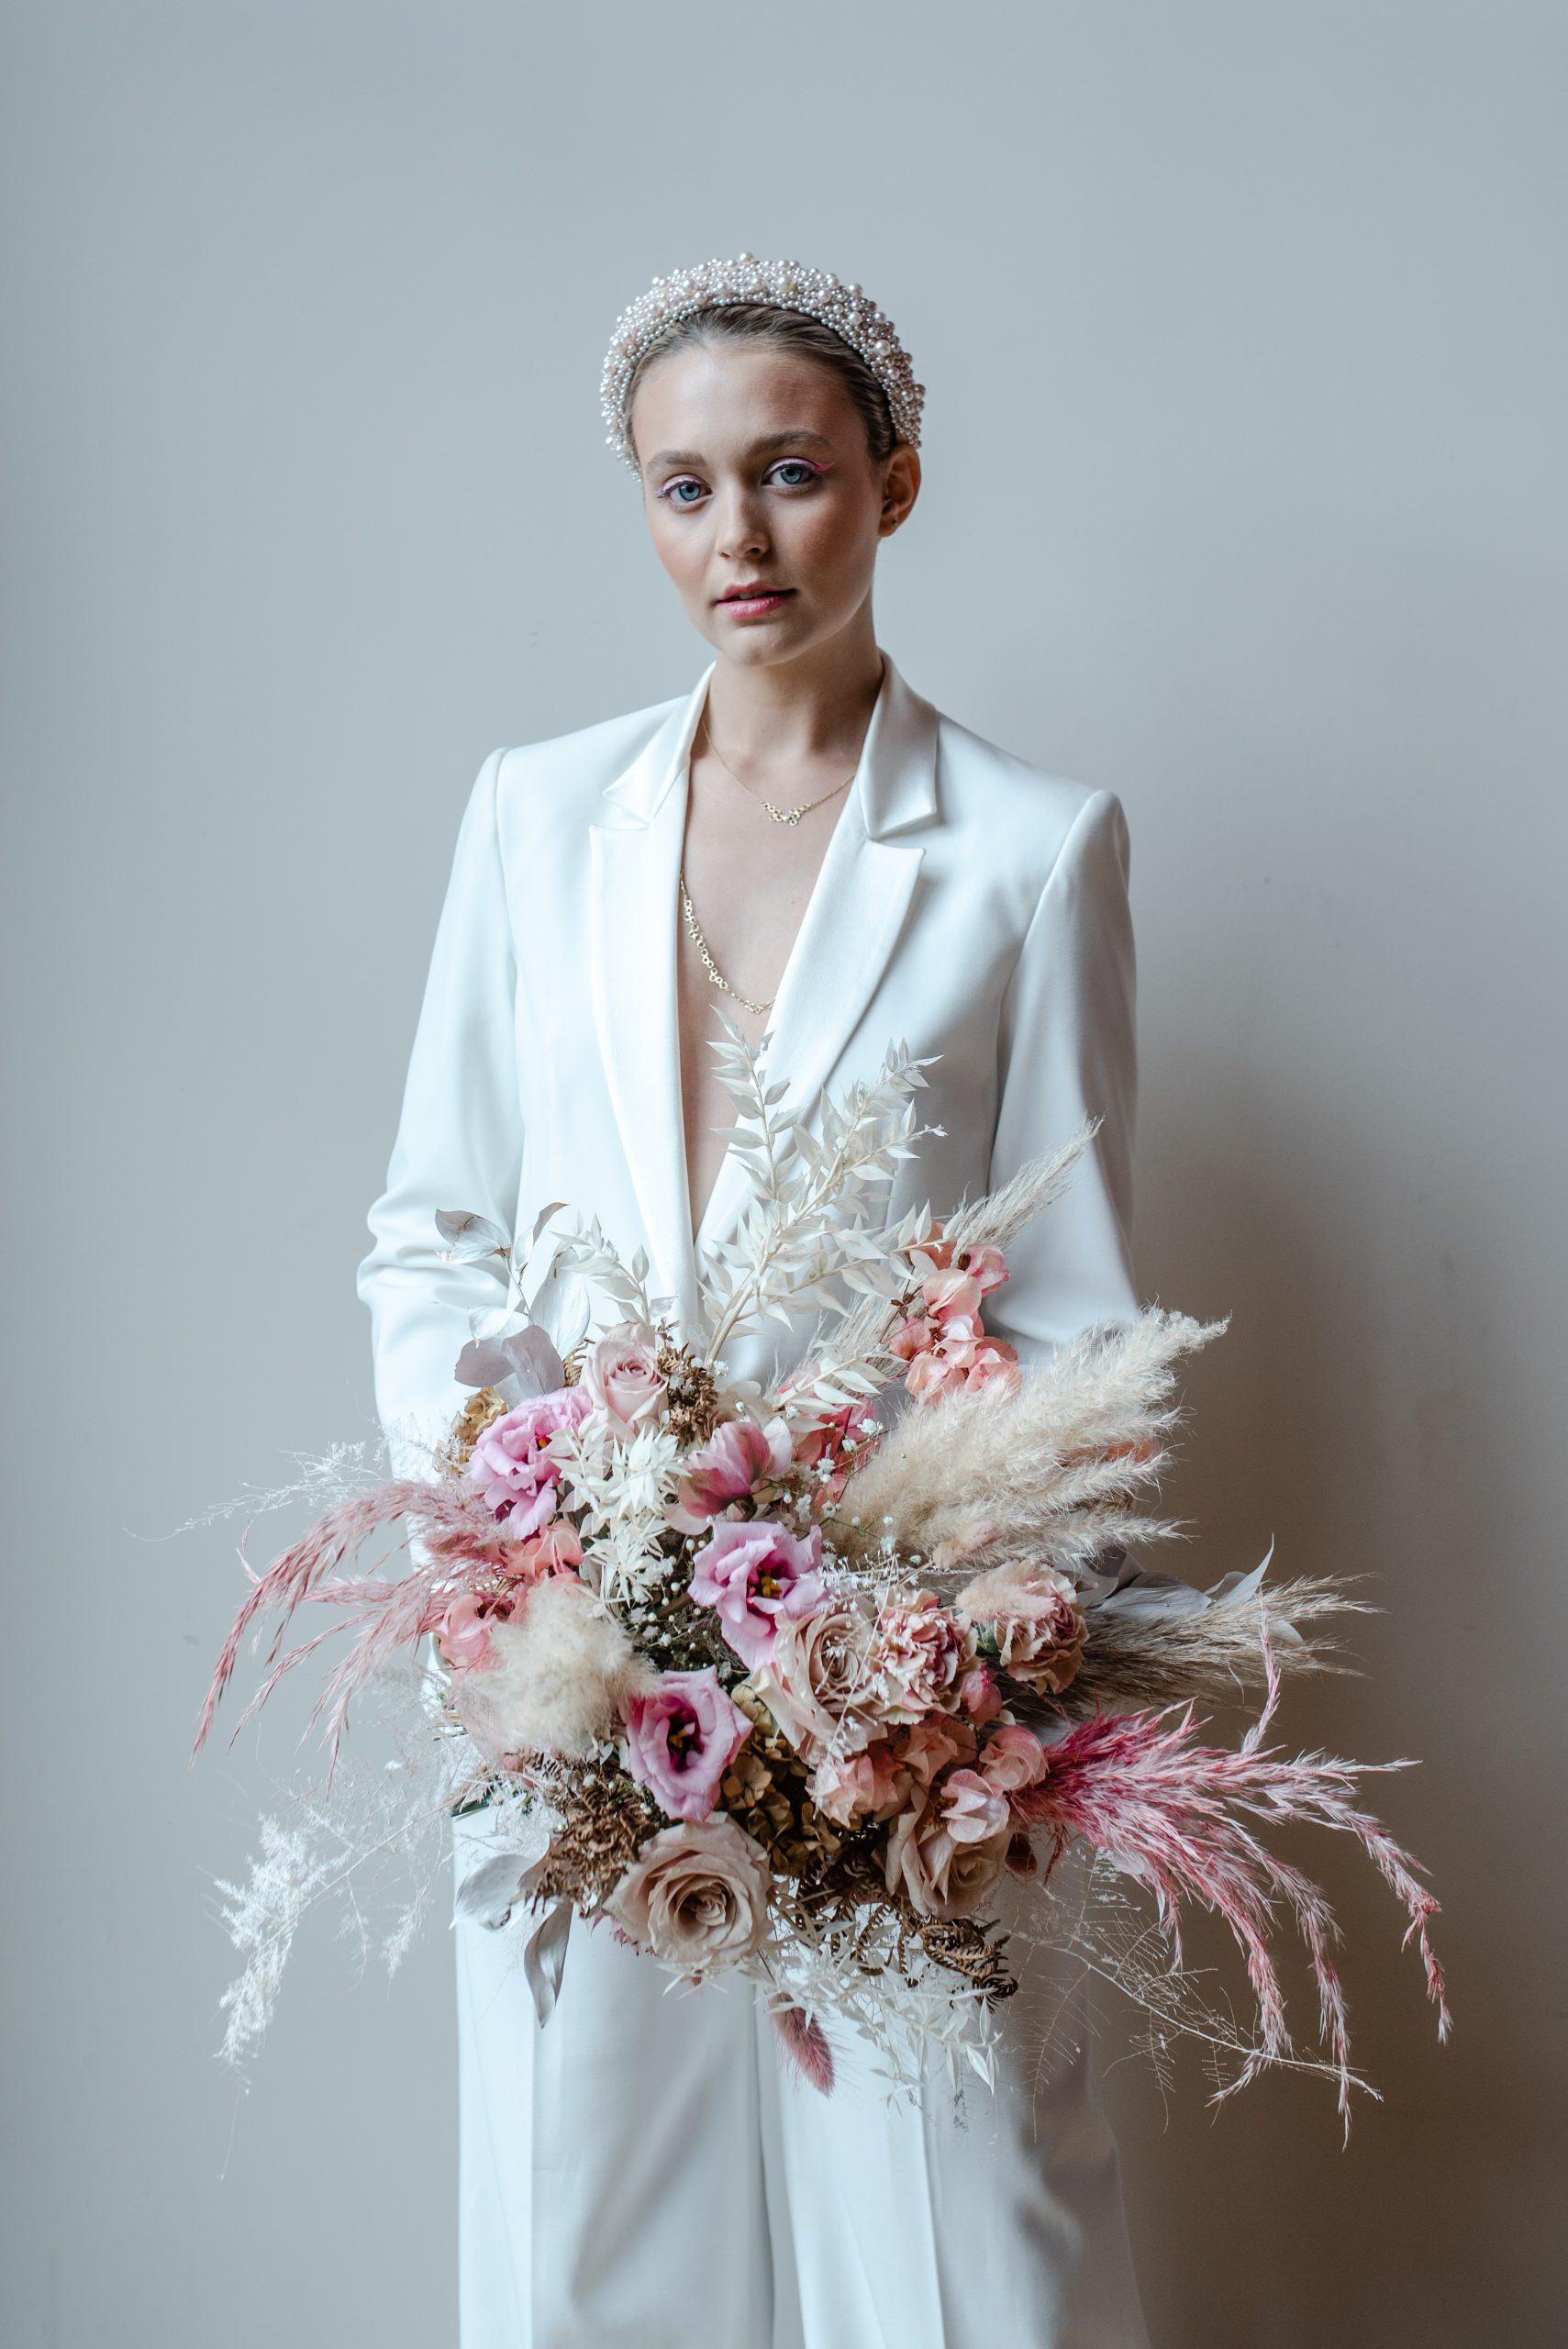 Modern bride in white trouser suit with pearl headband and large pastel pink bouquet